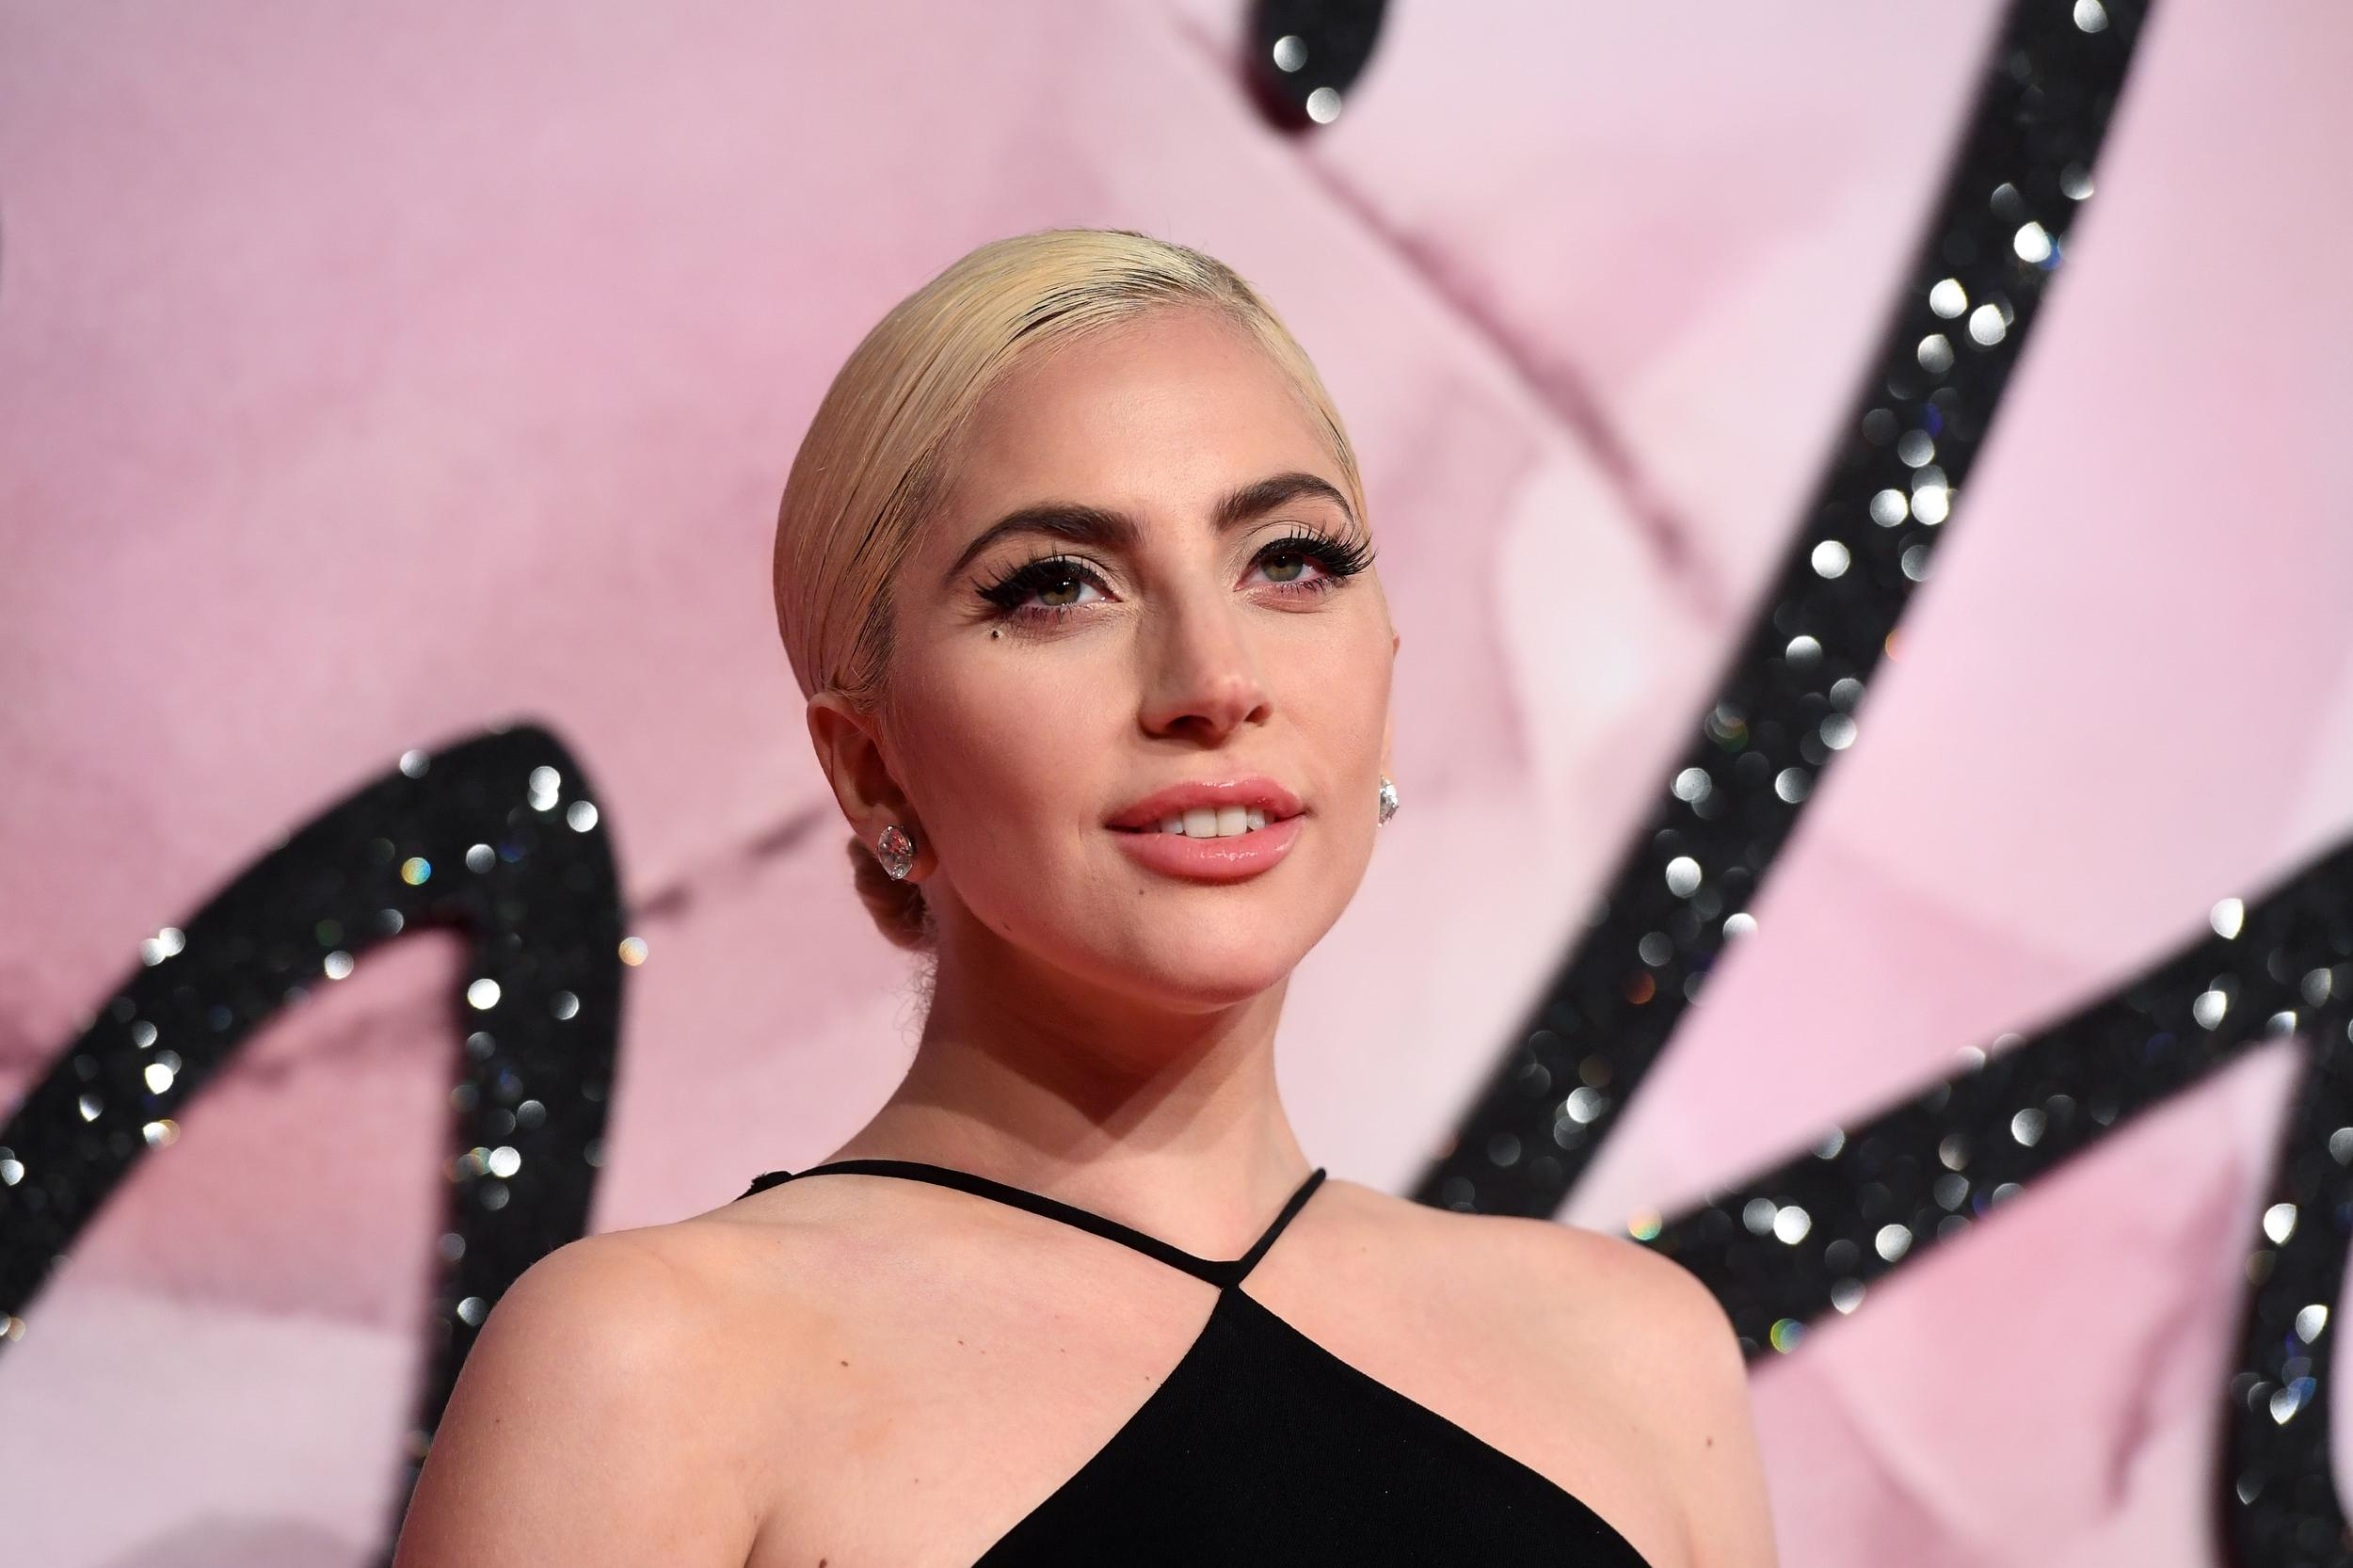 Lady Gaga Sang 'Bad Romance' on the Set of 'A Star Is Born,' and the Video Is Awesome